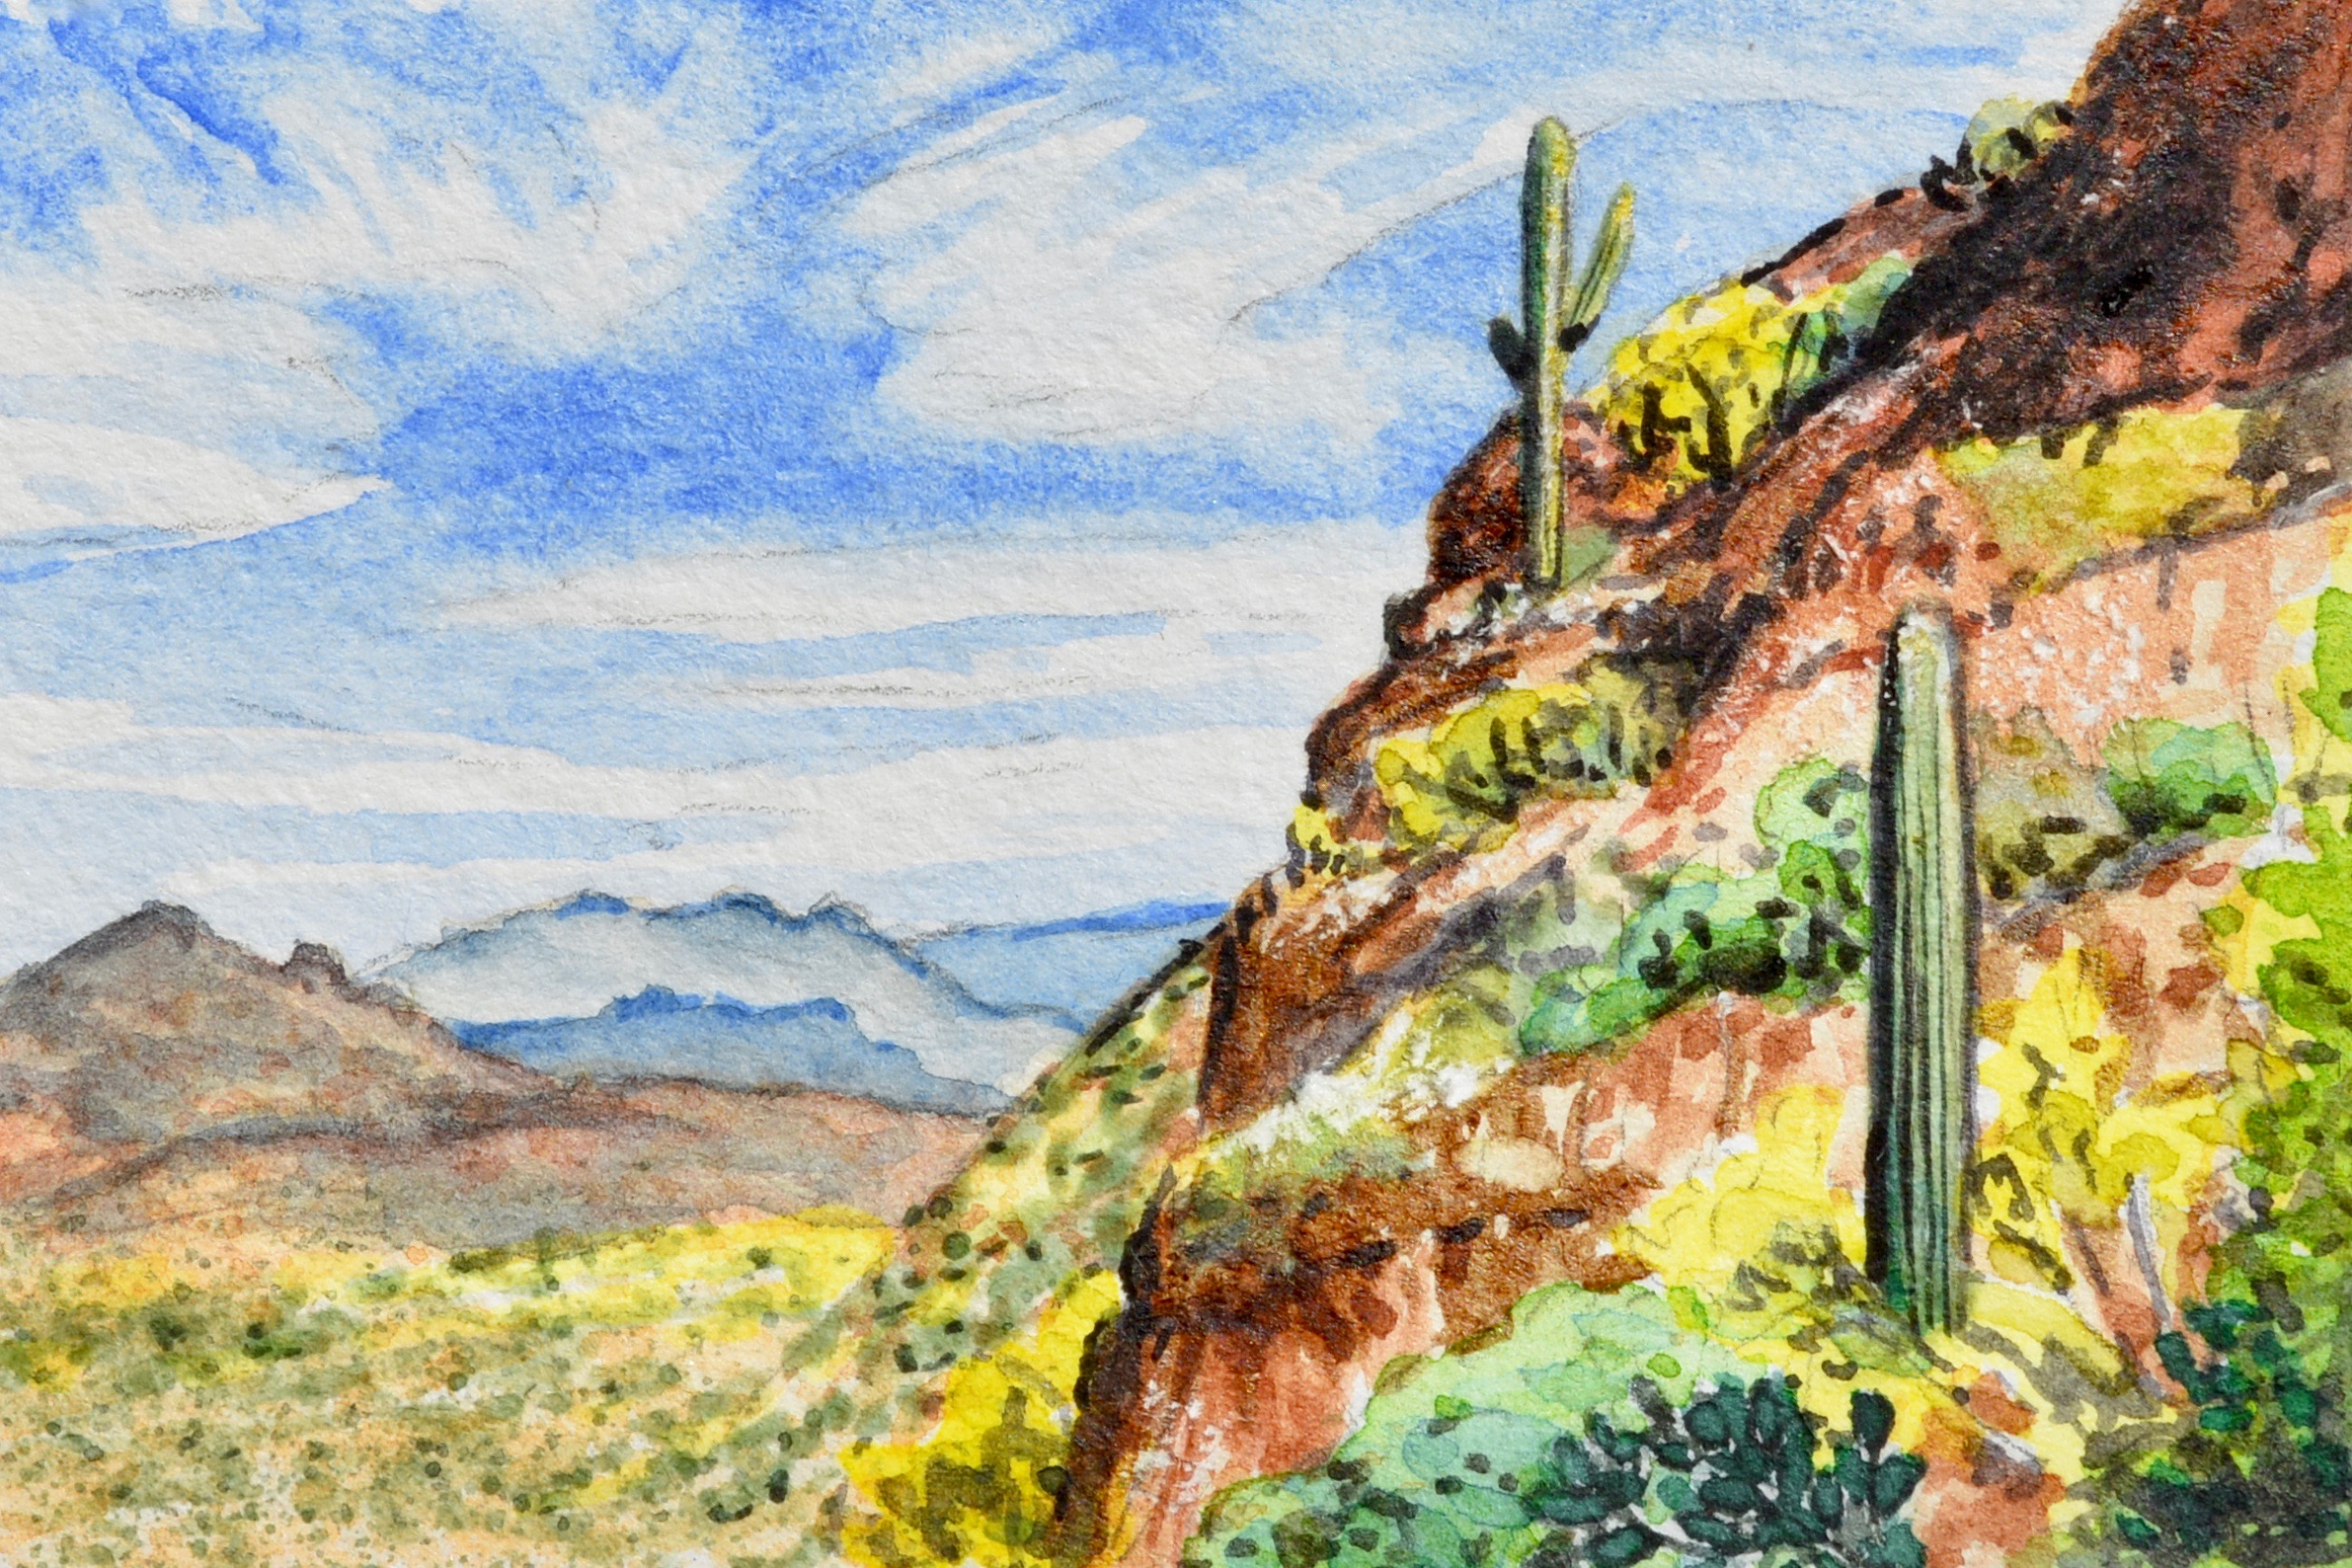 """Mesa, Arizona: 5/12/19, 09:21:08"" 3x2"" watercolor on 140 lb. watercolor paper For sale as of this blog posting -  visit my online shop  to purchase."